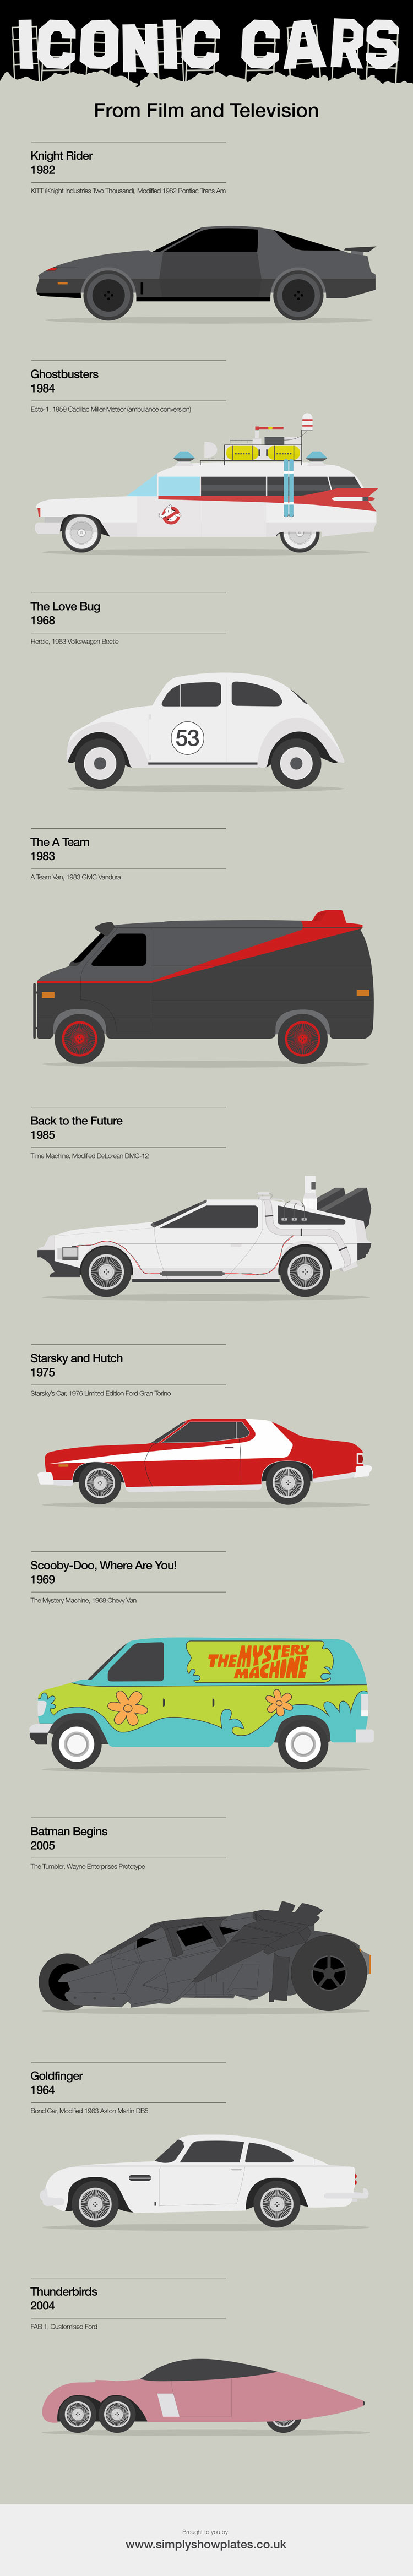 Infographic: Iconic Cars From Film And Television #infographic